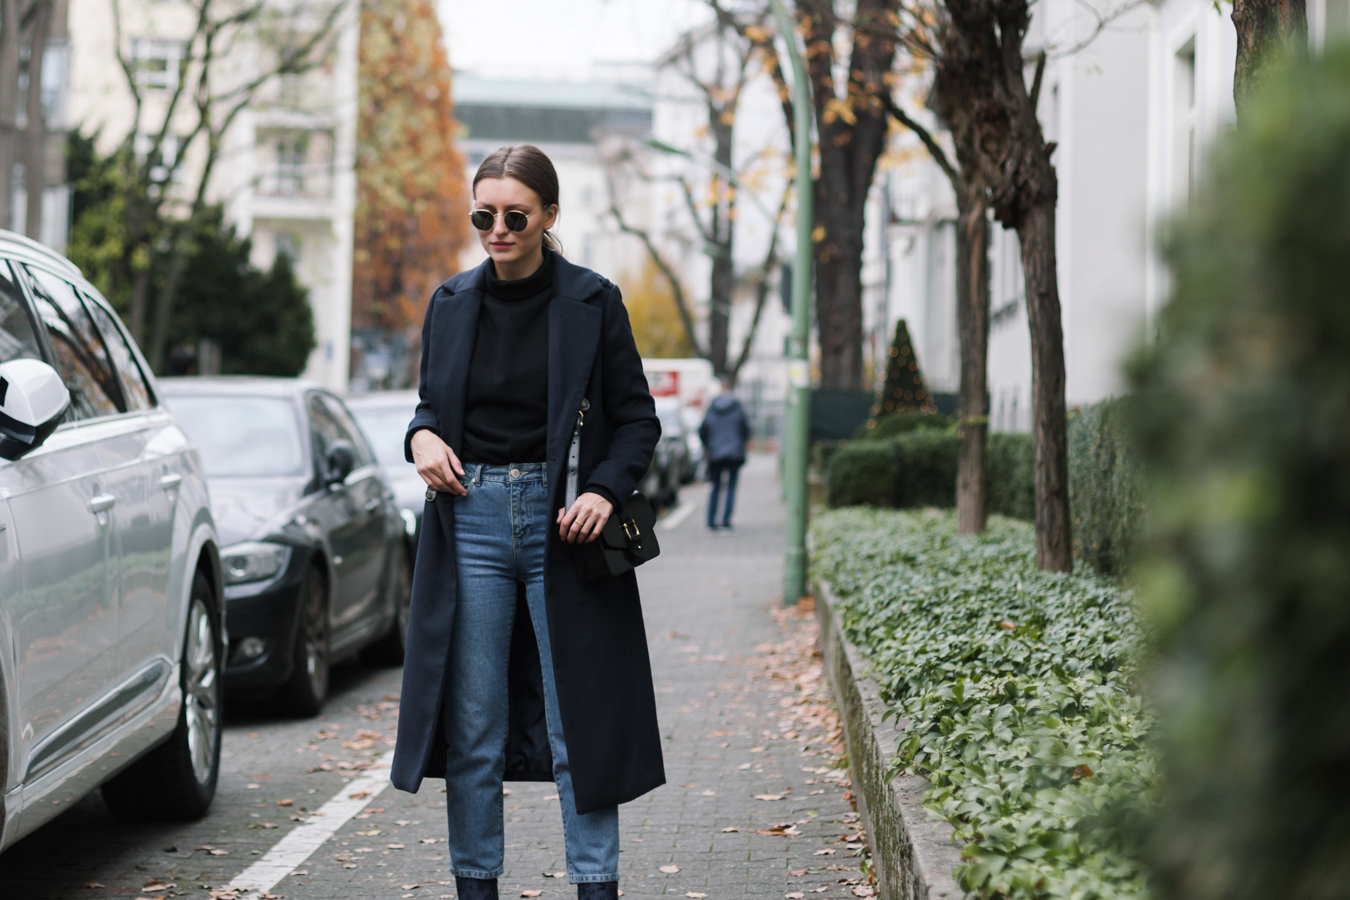 velvet-boots-mom-jeans-outfit-livia-auer-4140